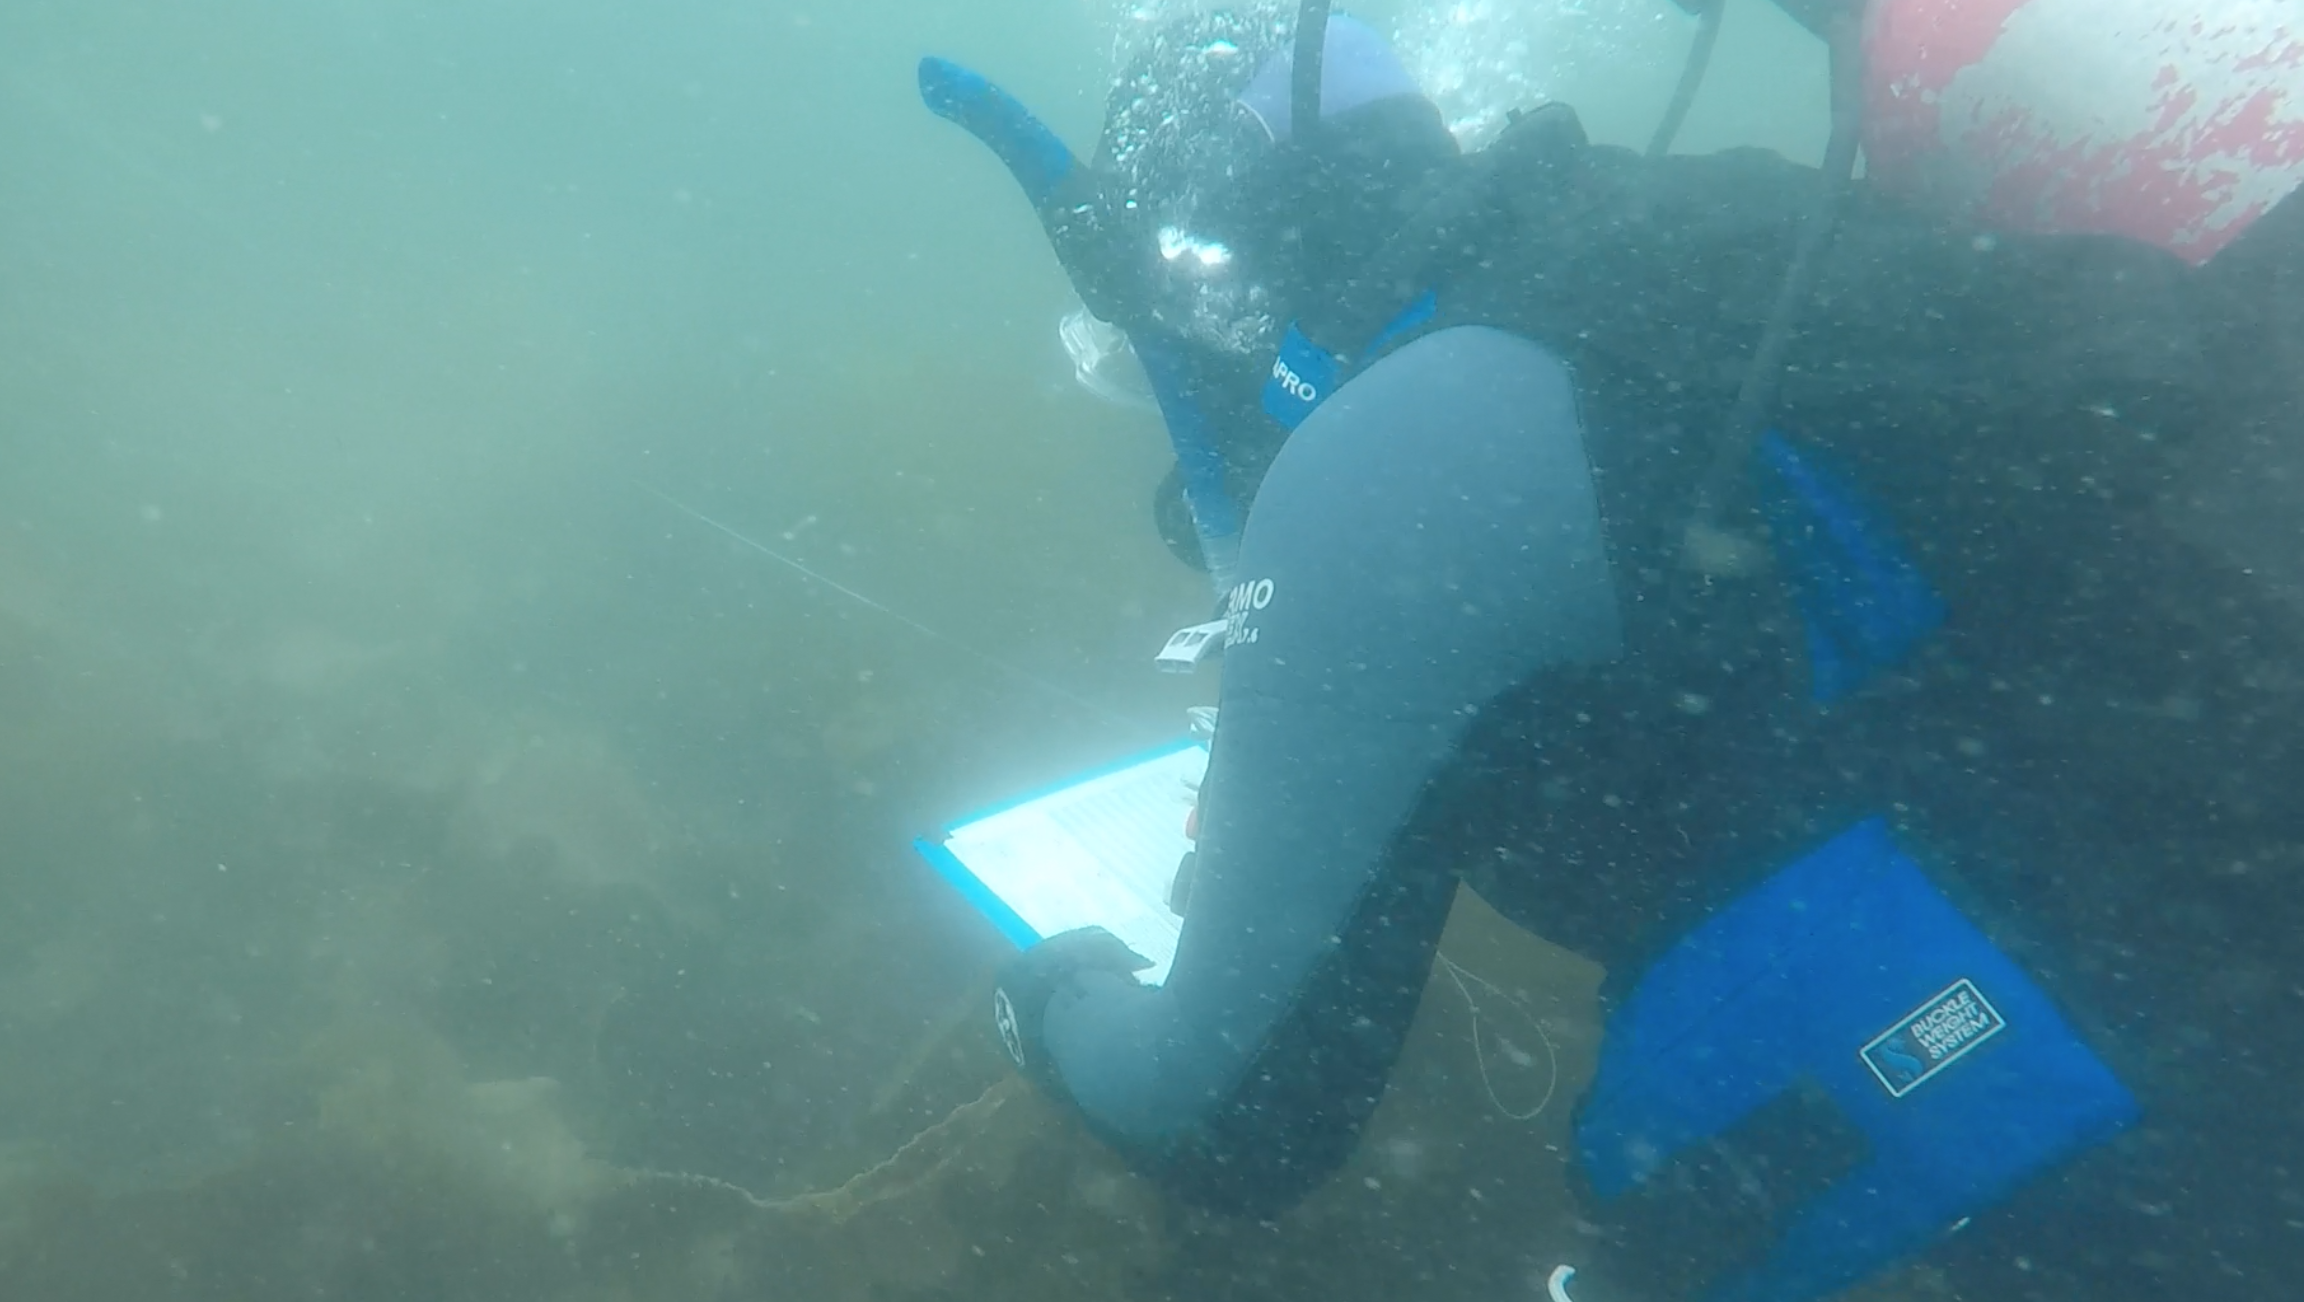 Bailey recording fish counts on waterproof paper taped to a clipboard.